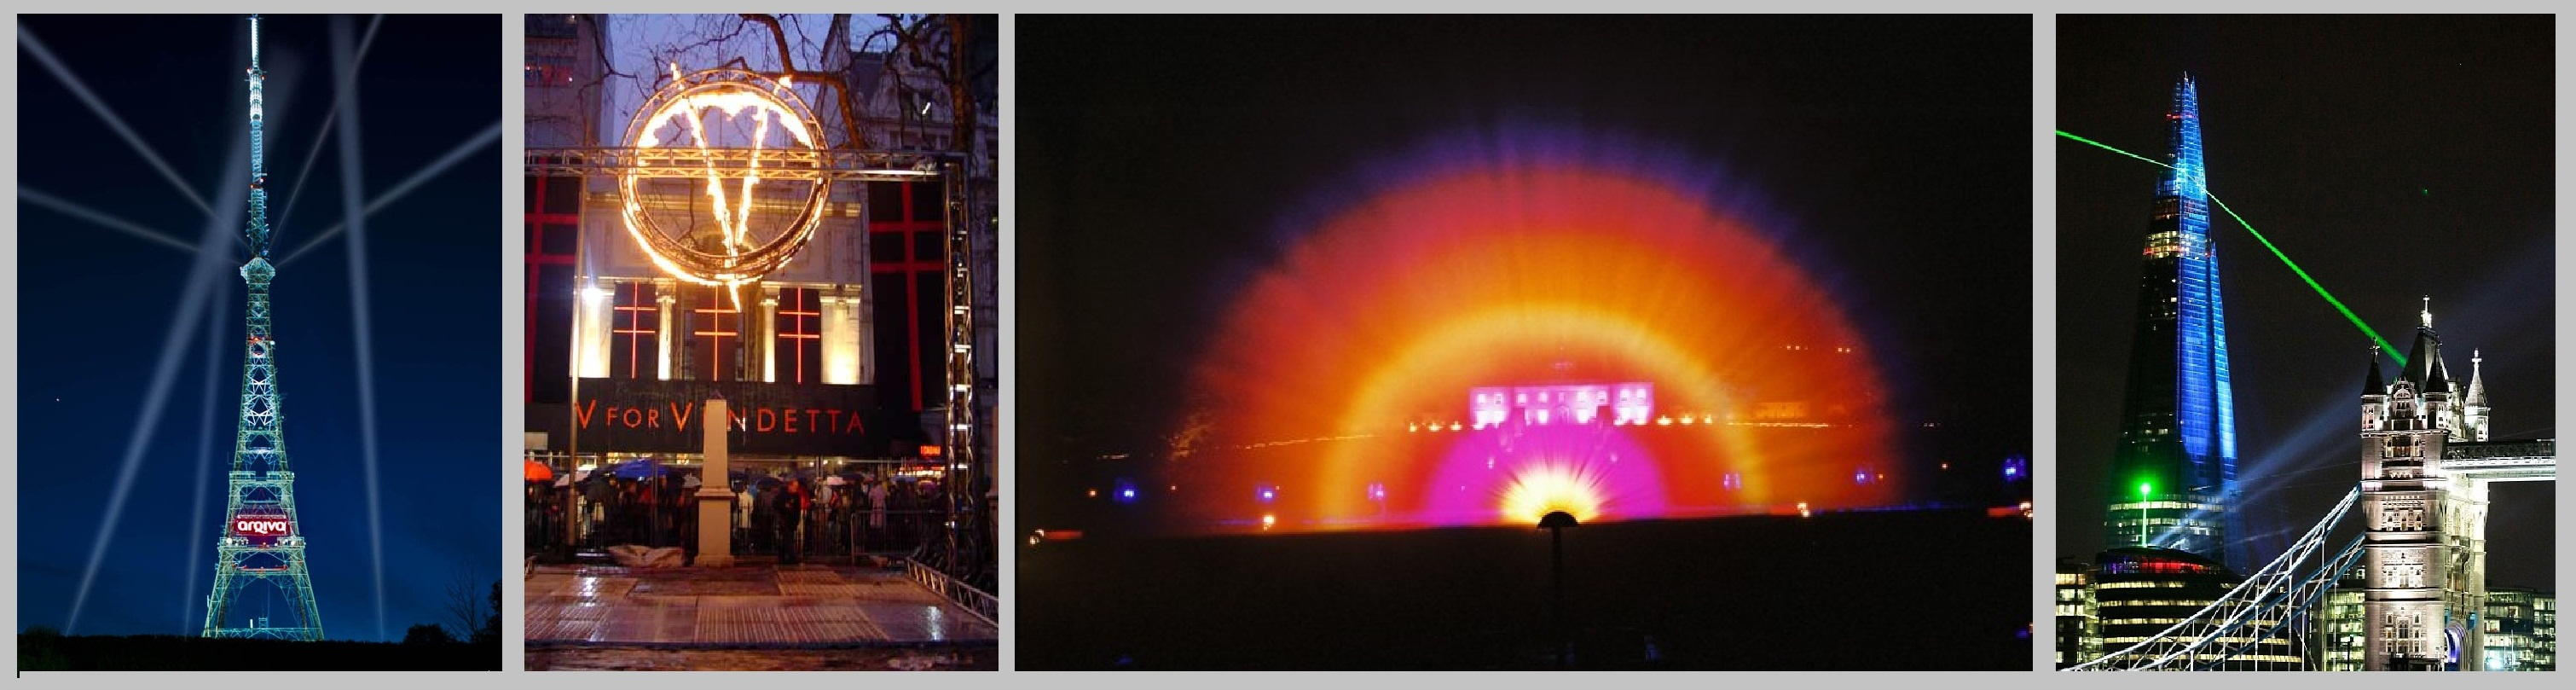 EMF Searchlights, flame effects, waterscreen